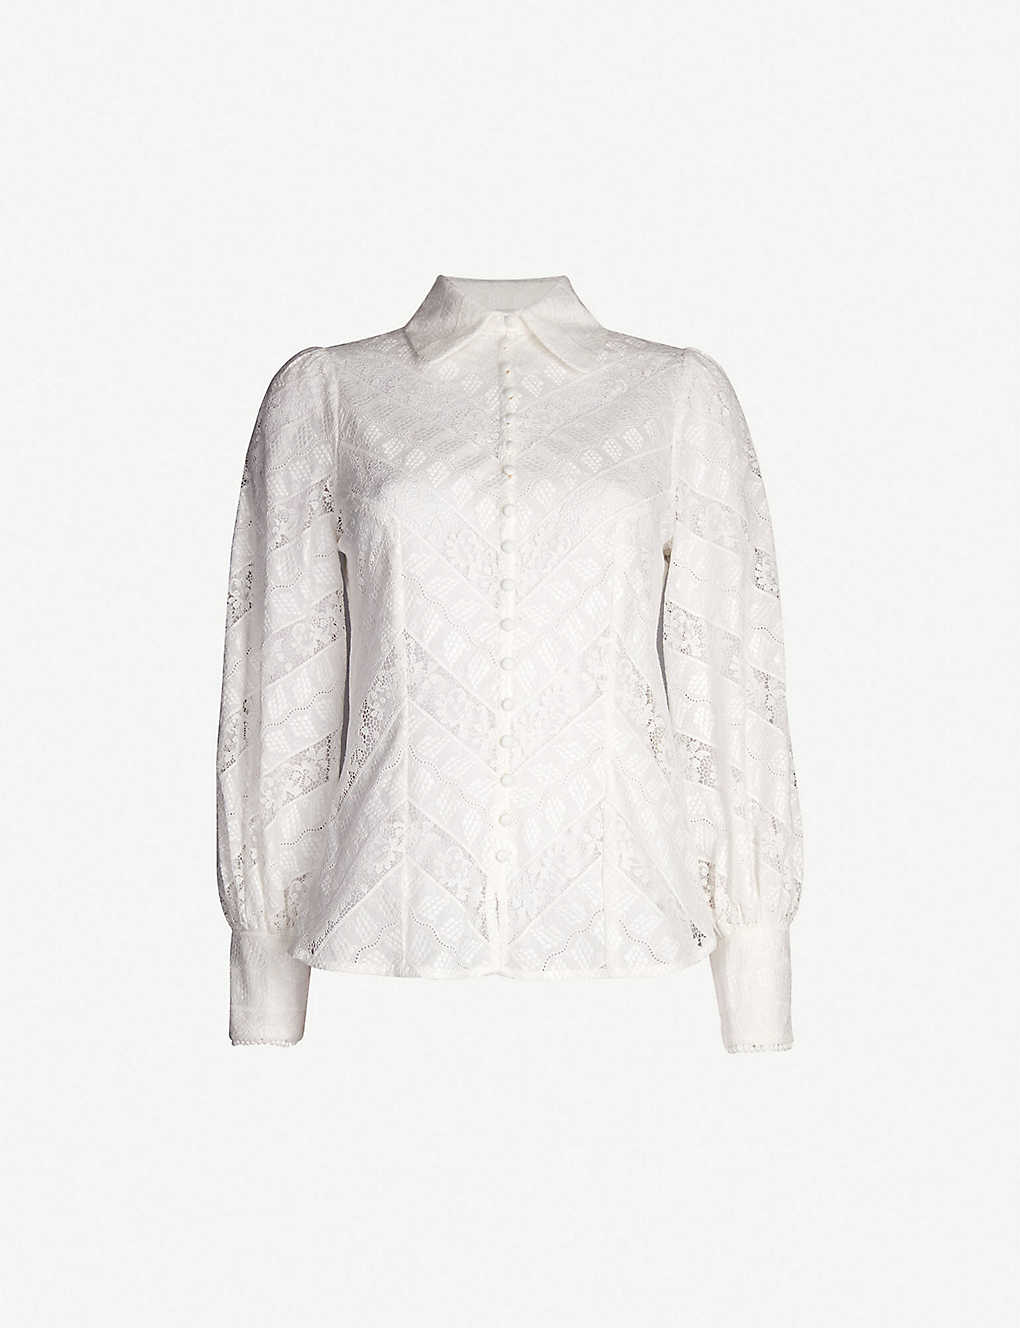 Ruffled Lace Shirt